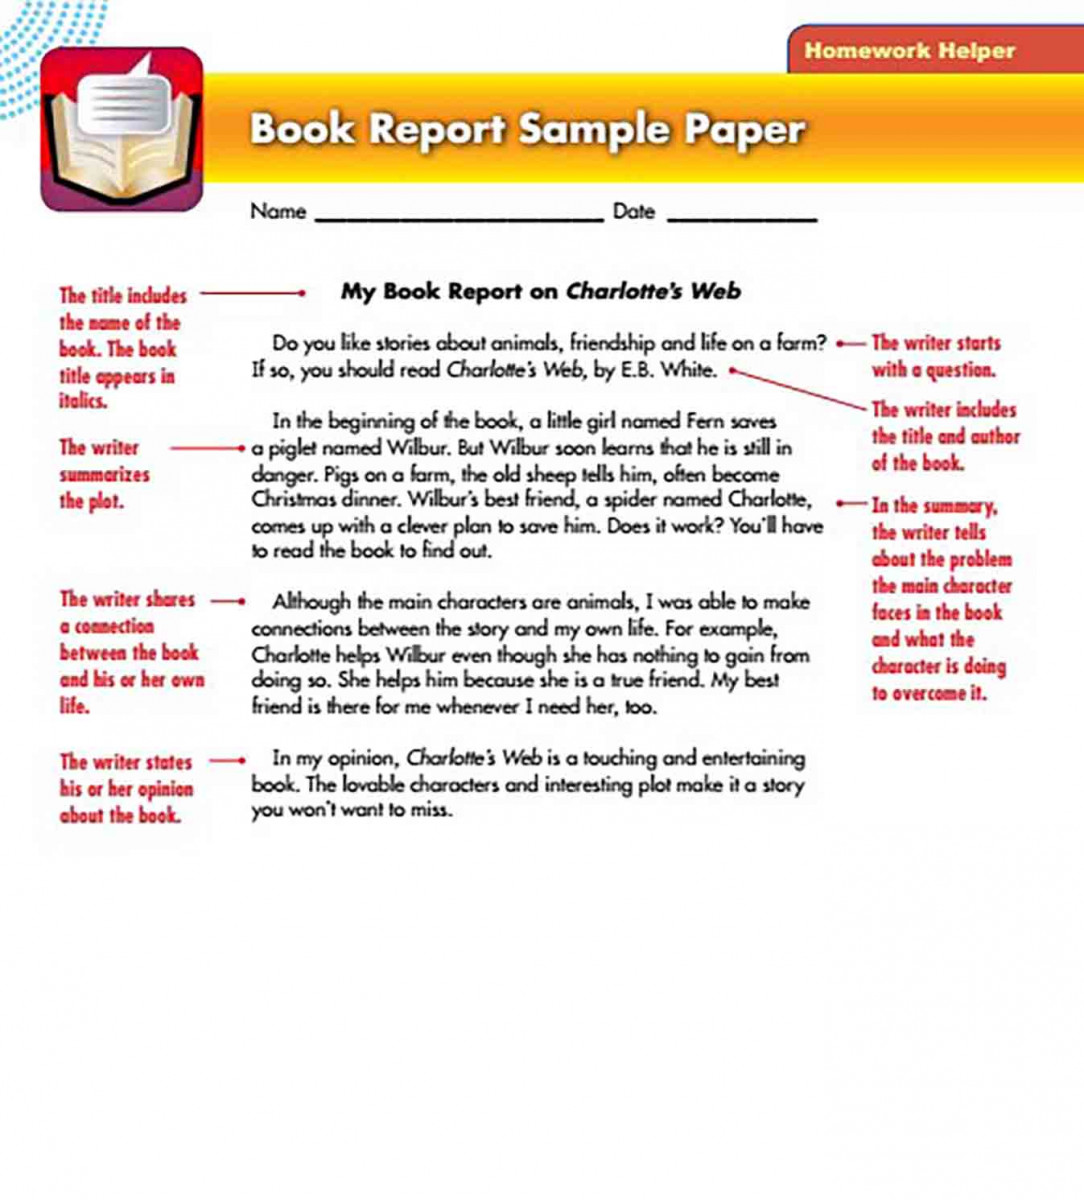 Book Report Sample Paper templates